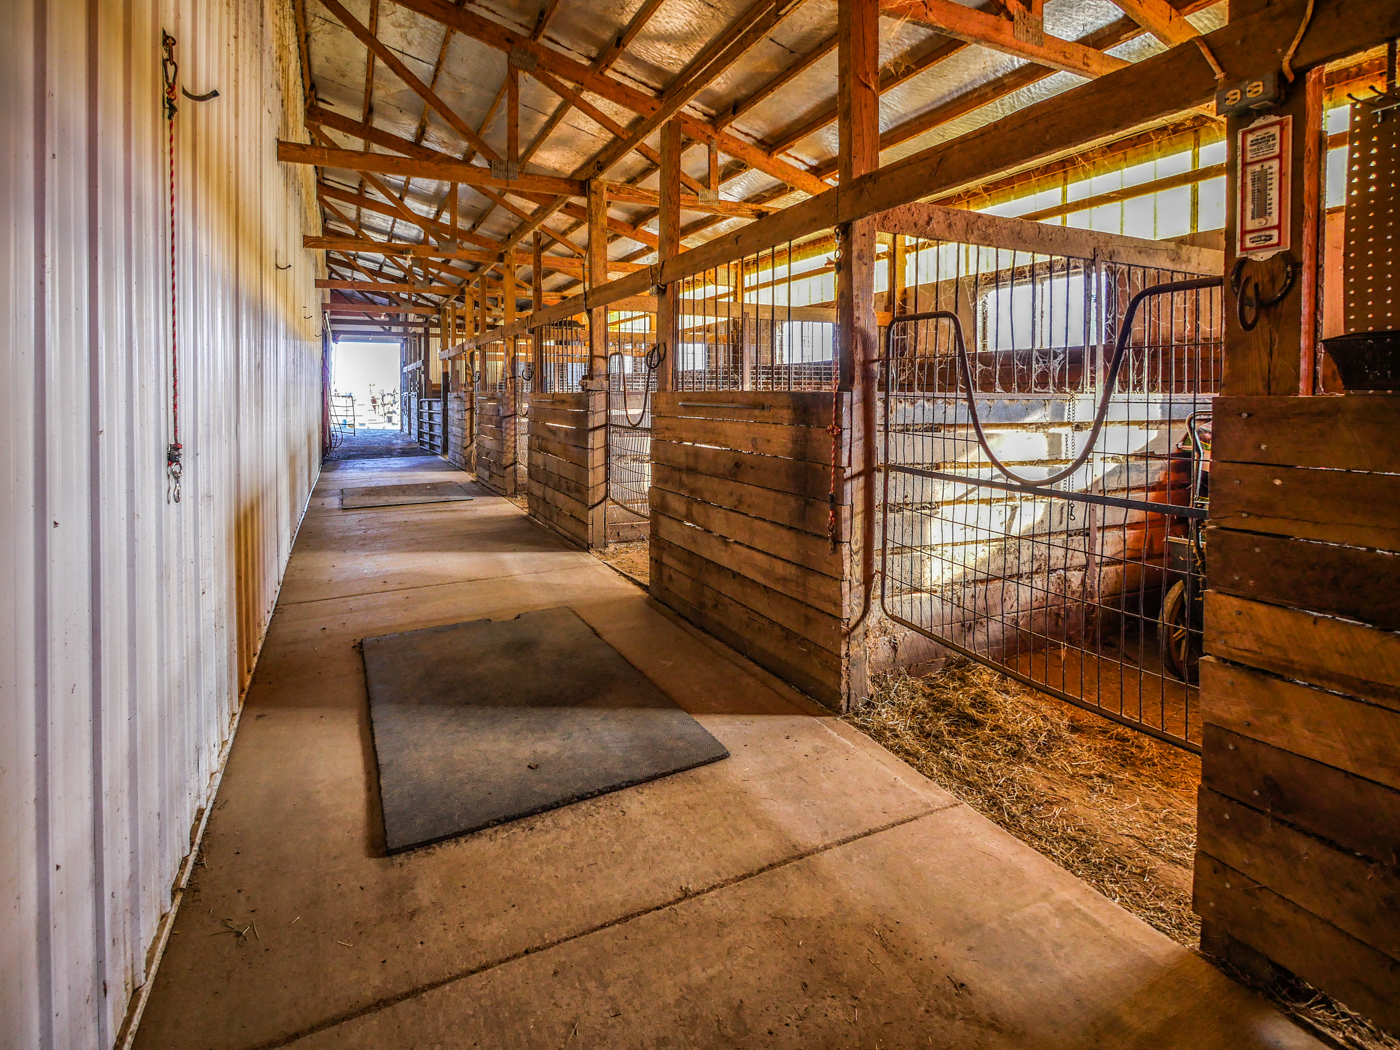 Stables - We offer boarding services, feeding, indoor arena, outdoor pasture, and more…